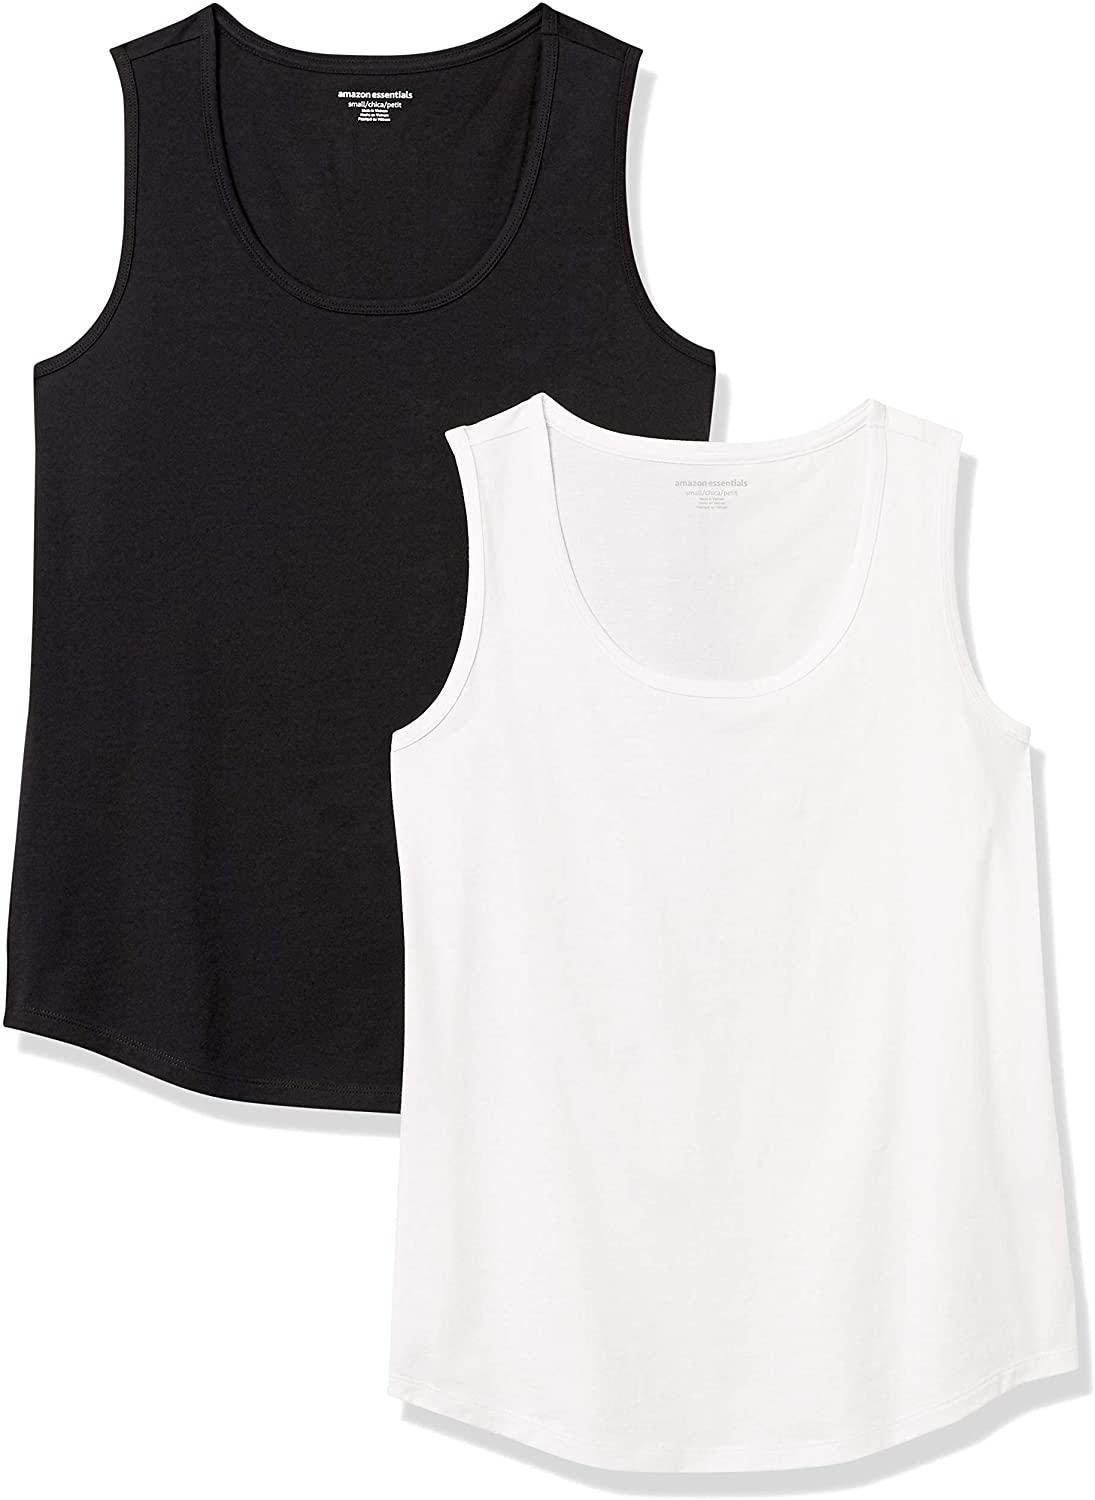 Amazon Essentials Women's 2-Pack Classic Fit 100% Cotton Sleeveless Tank Top